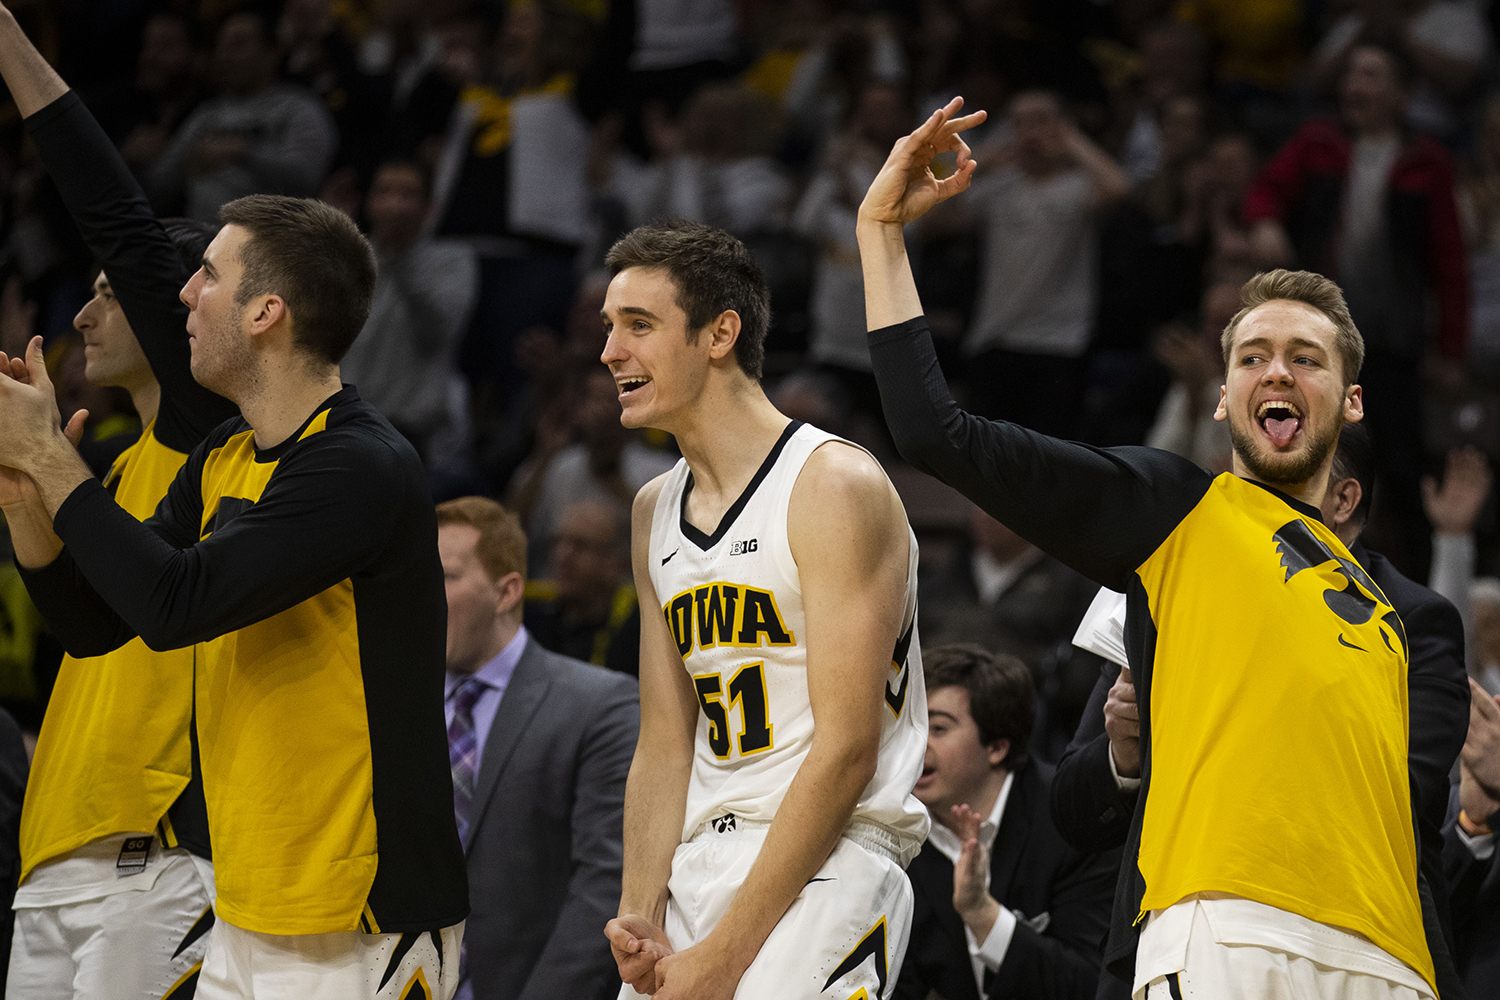 The+Iowa+bench+reacts+to+a+made+3-pointer+during+the+Iowa%2FIllinois+men%27s+basketball+game+at+Carver-Hawkeye+Arena+on+Sunday%2C+January+20%2C+2019.+The+Hawkeyes+defeated+the+Fighting+Illini%2C+95-71.+